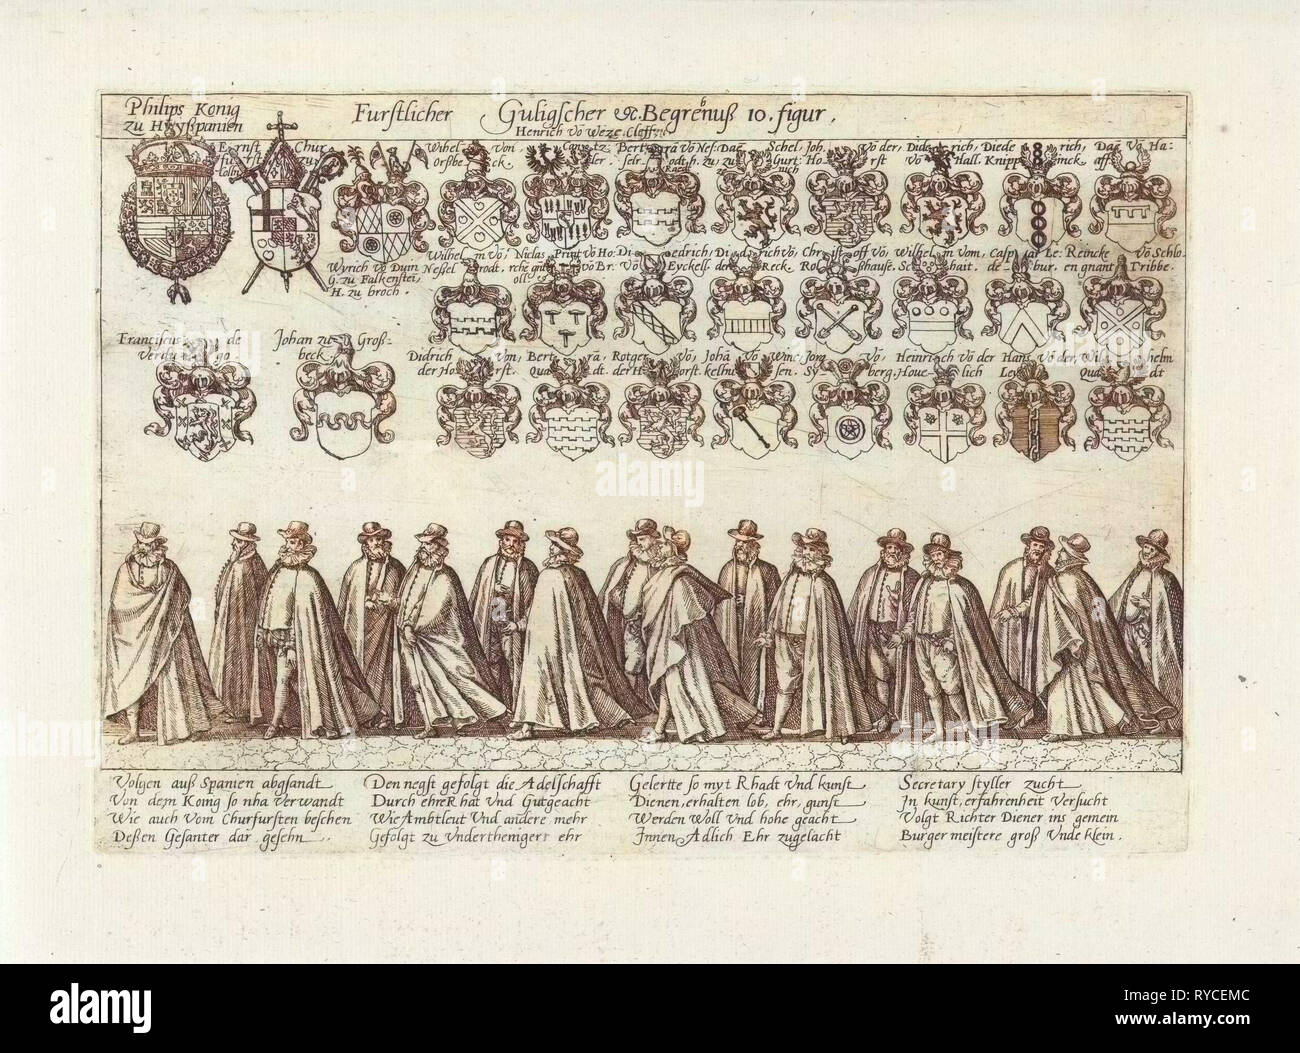 Funeral procession with peers, Anonymous, 1592 - Stock Image